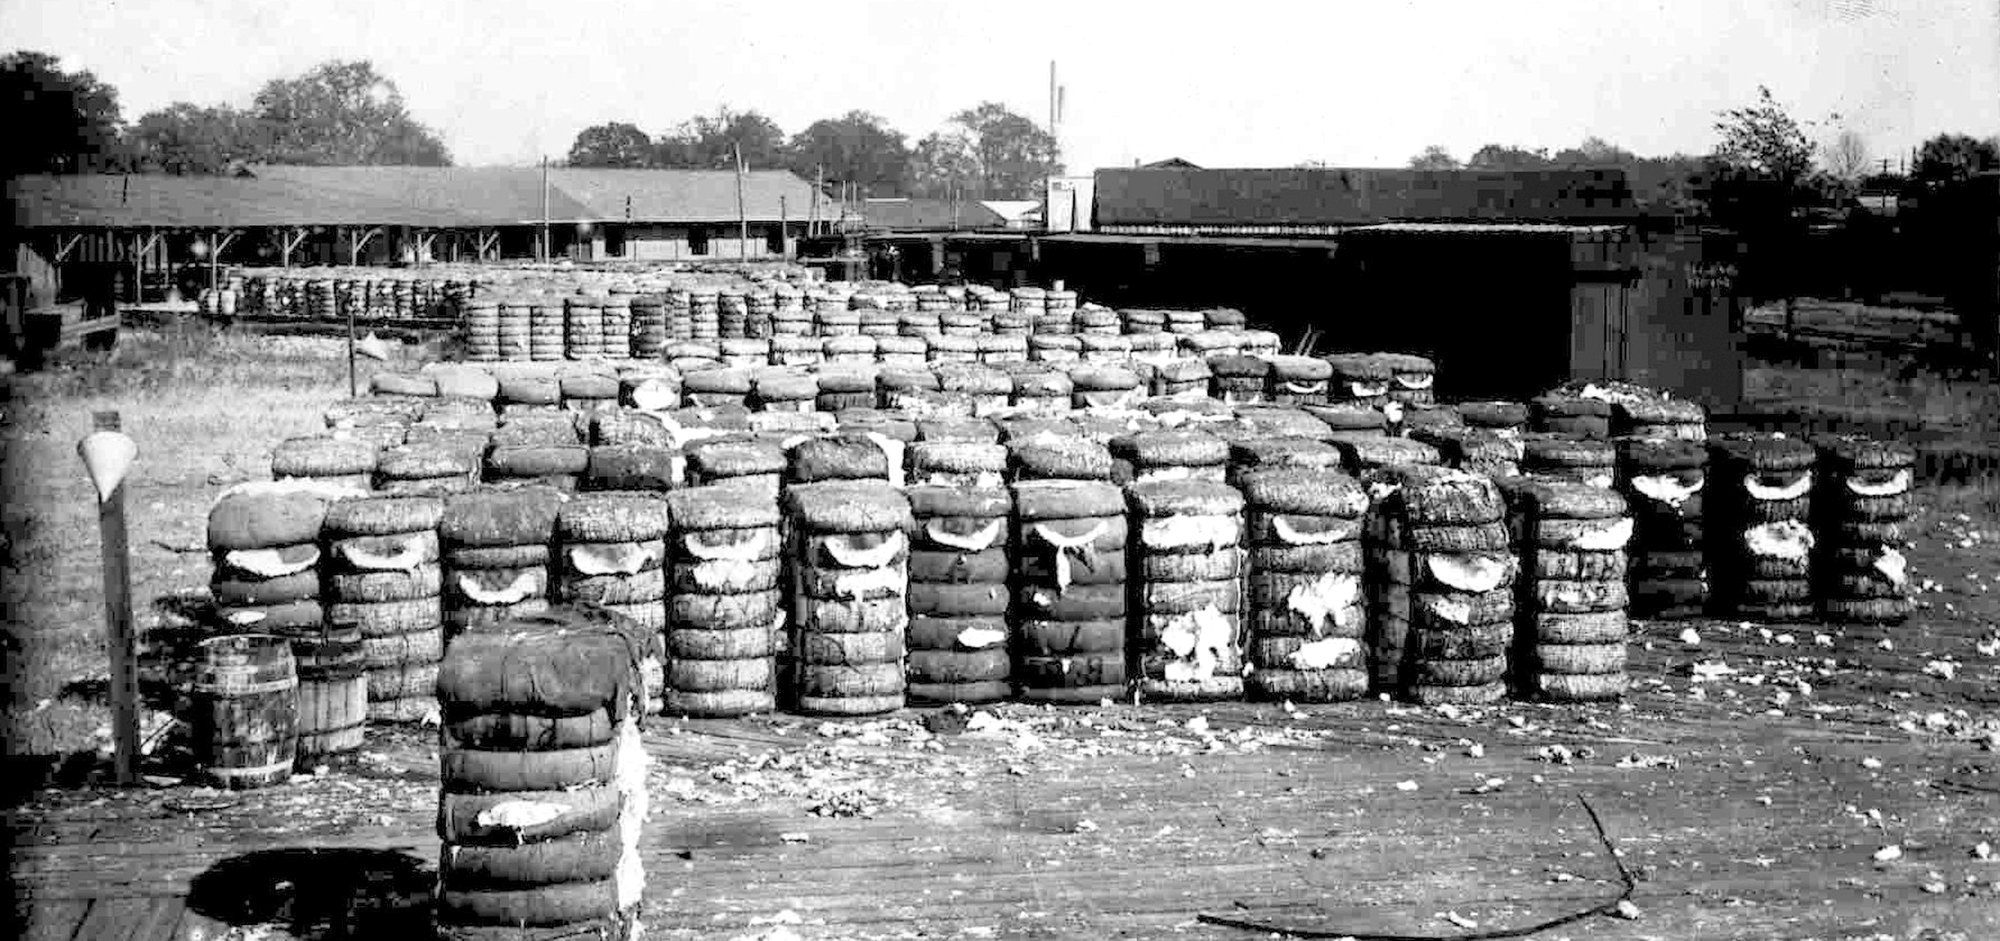 Bales of cotton wait for shipment from Sumter.